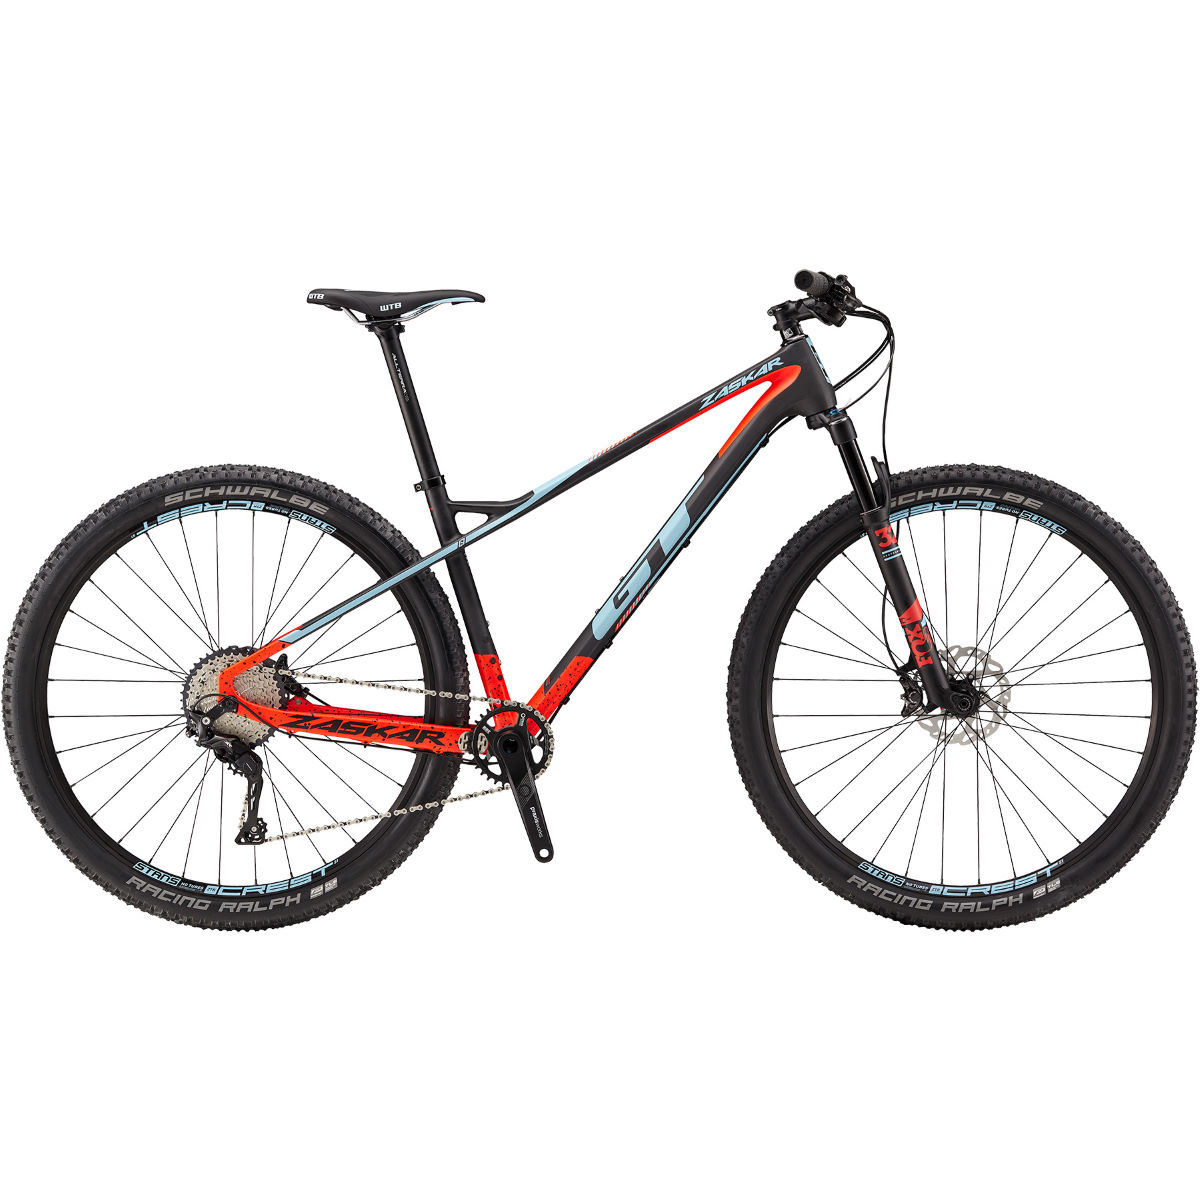 VTT semi-rigide GT Zaskar Carbon Expert - Small Stock Bike Carbone